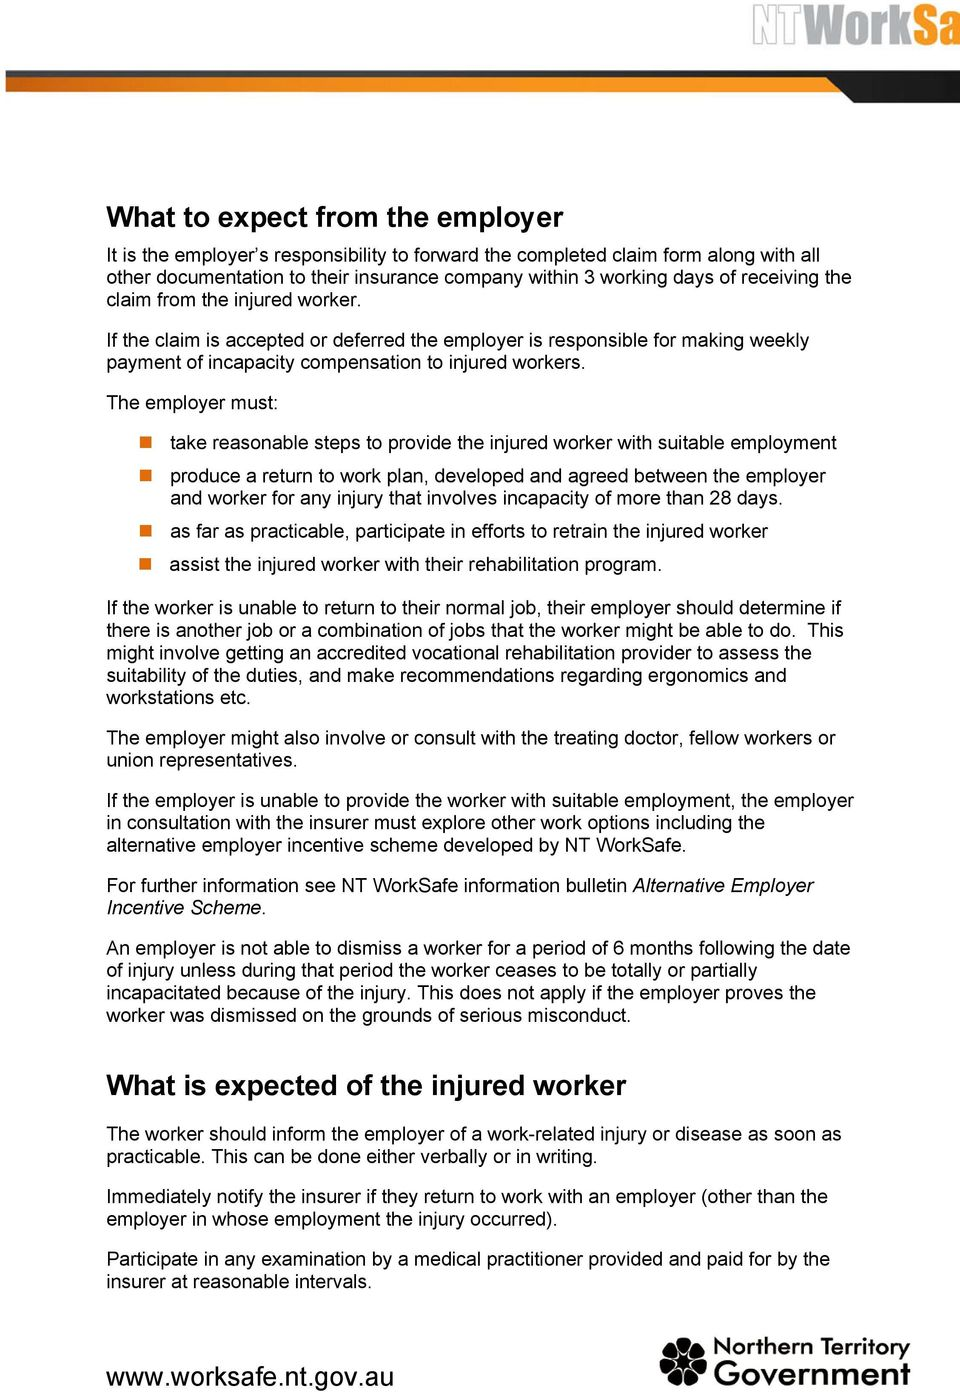 The employer must: take reasonable steps to provide the injured worker with suitable employment produce a return to work plan, developed and agreed between the employer and worker for any injury that